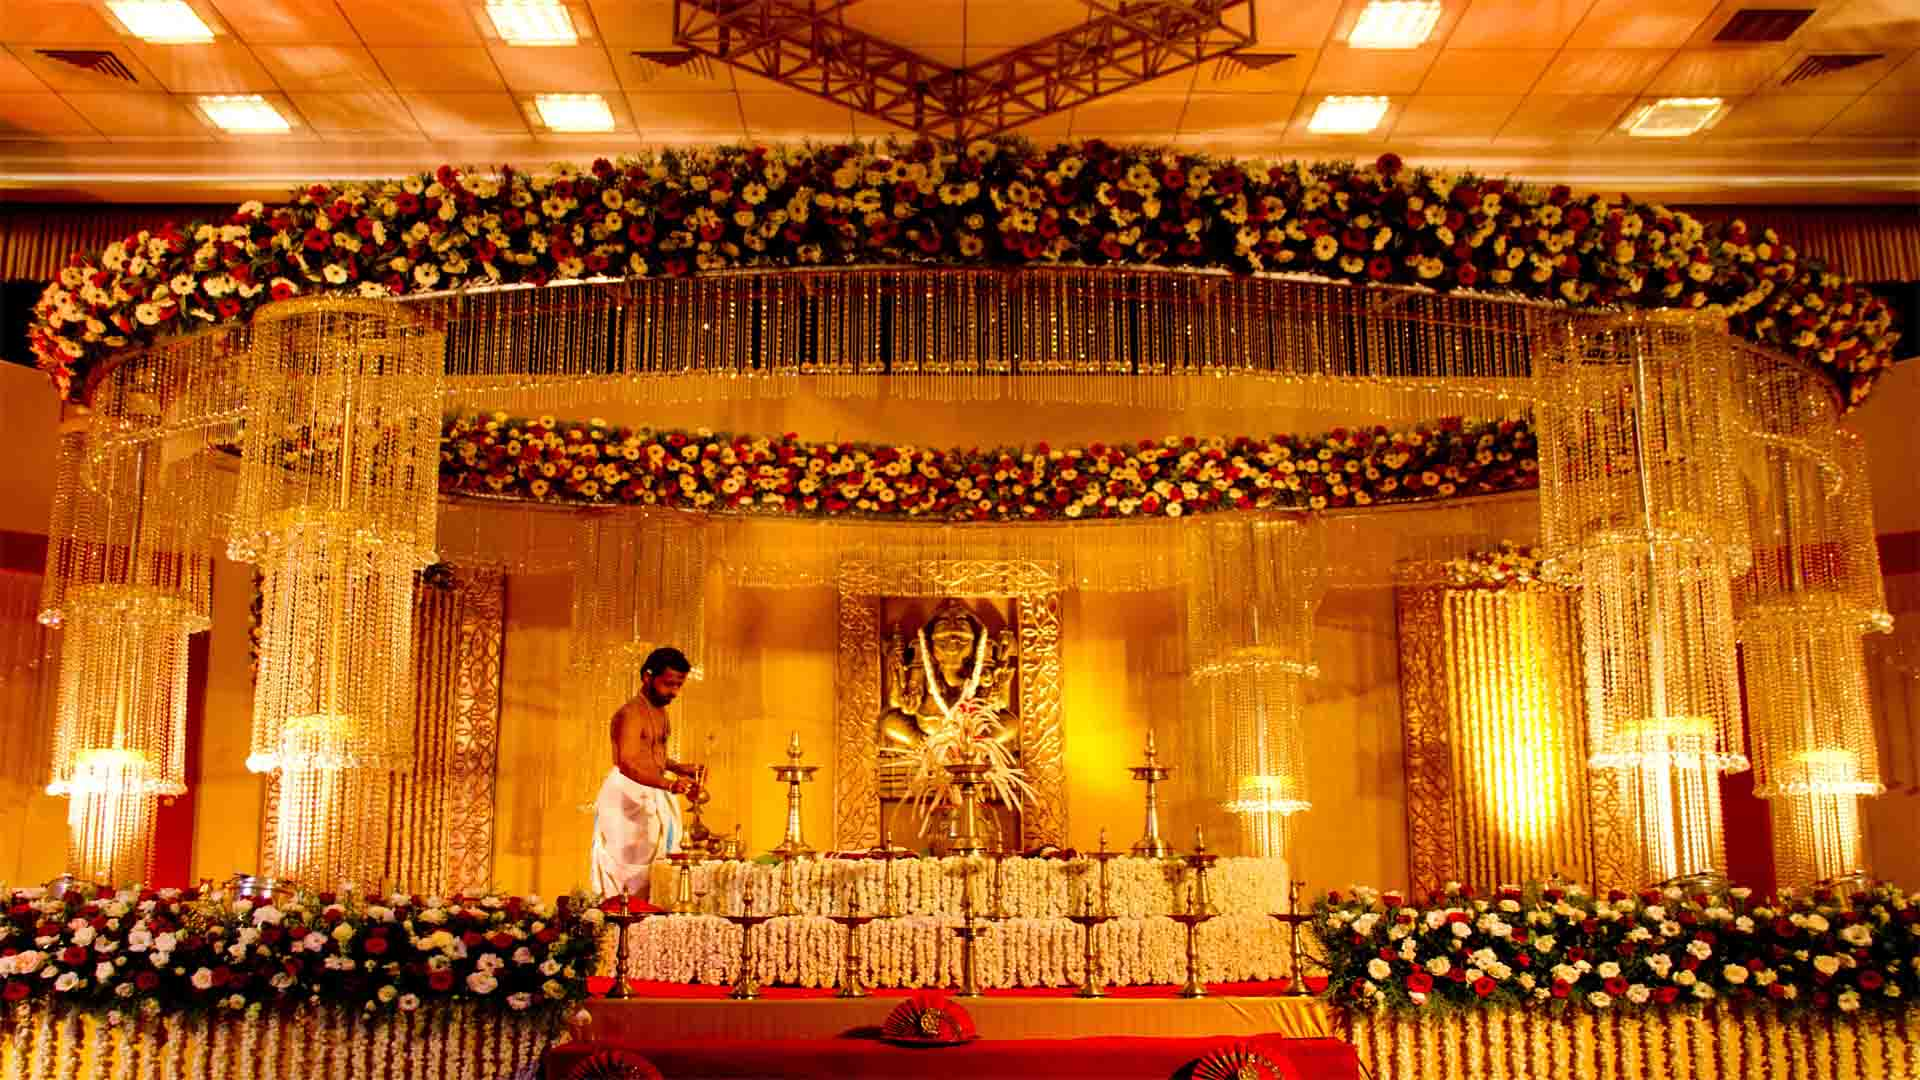 Tuberose Flower Pictures Meanings Bengali wedding decorations pictures